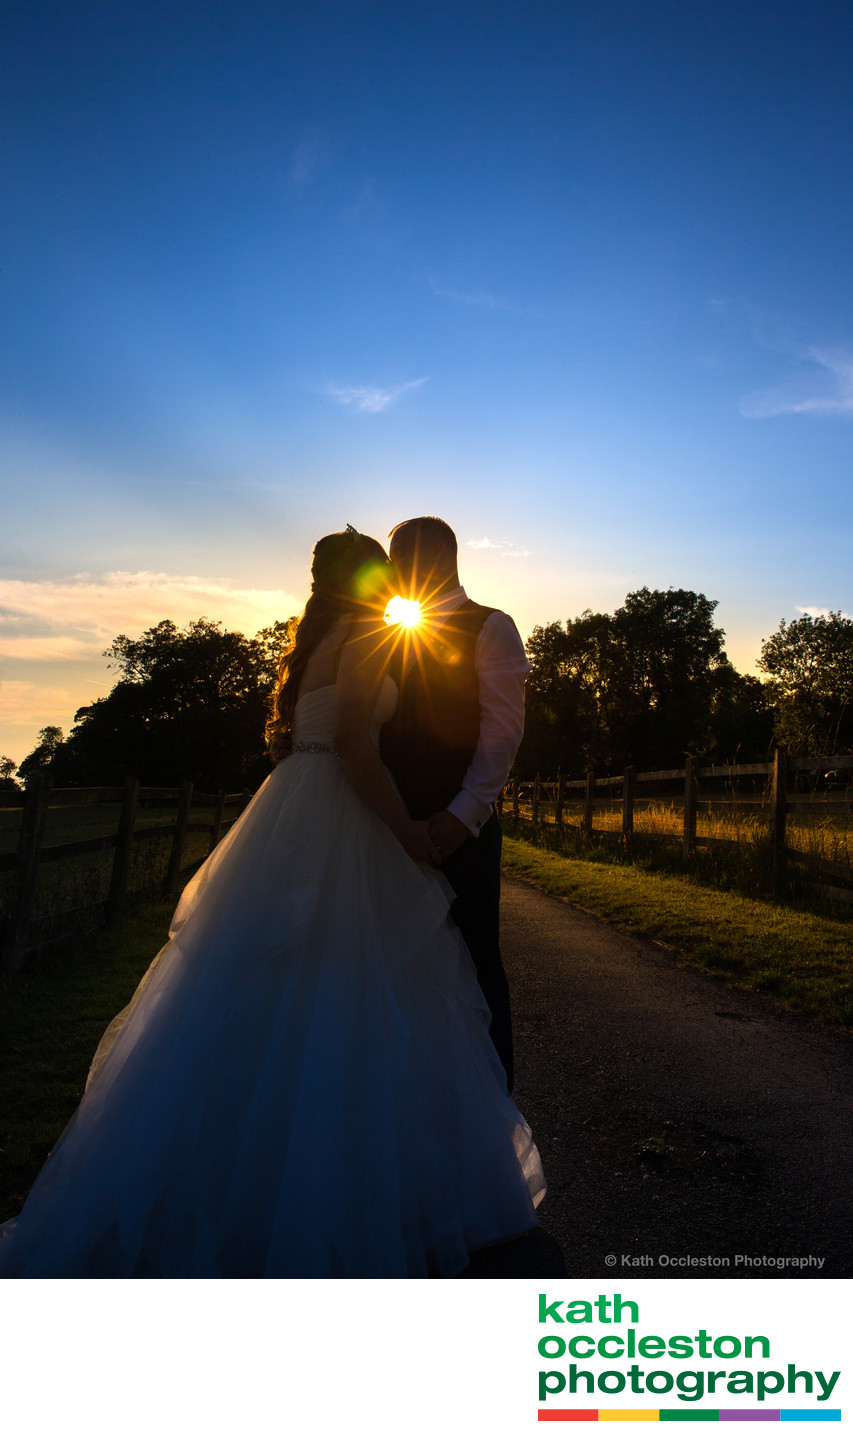 Sunset wedding photography at The Villa, Wrea Green